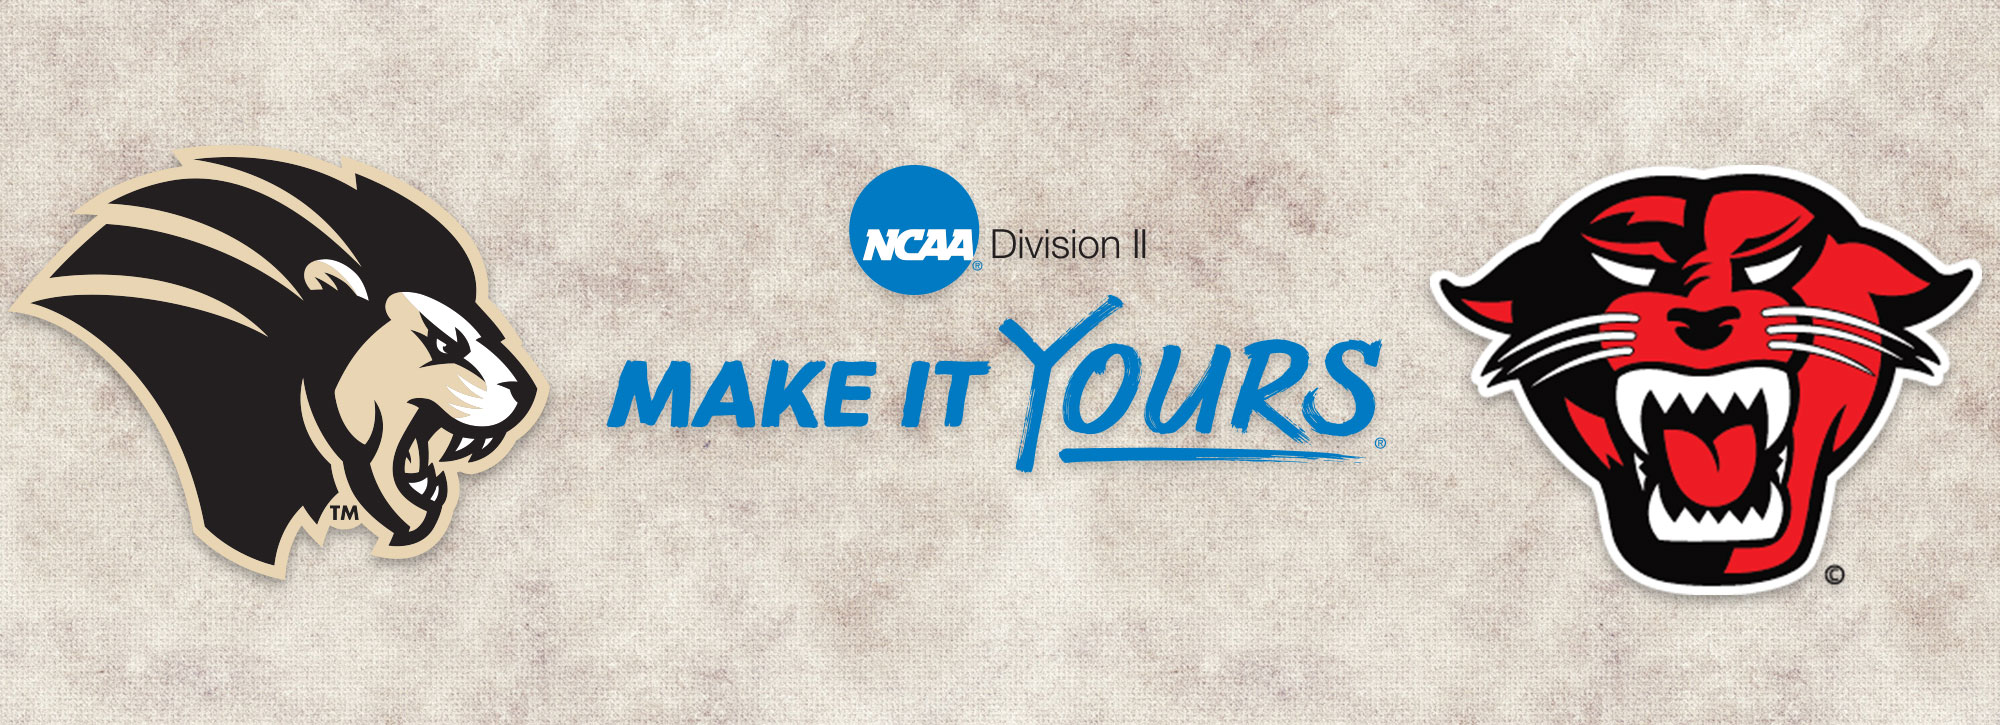 Davenport, Purdue Northwest Advance to Final Year of NCAA Division II Membership Process